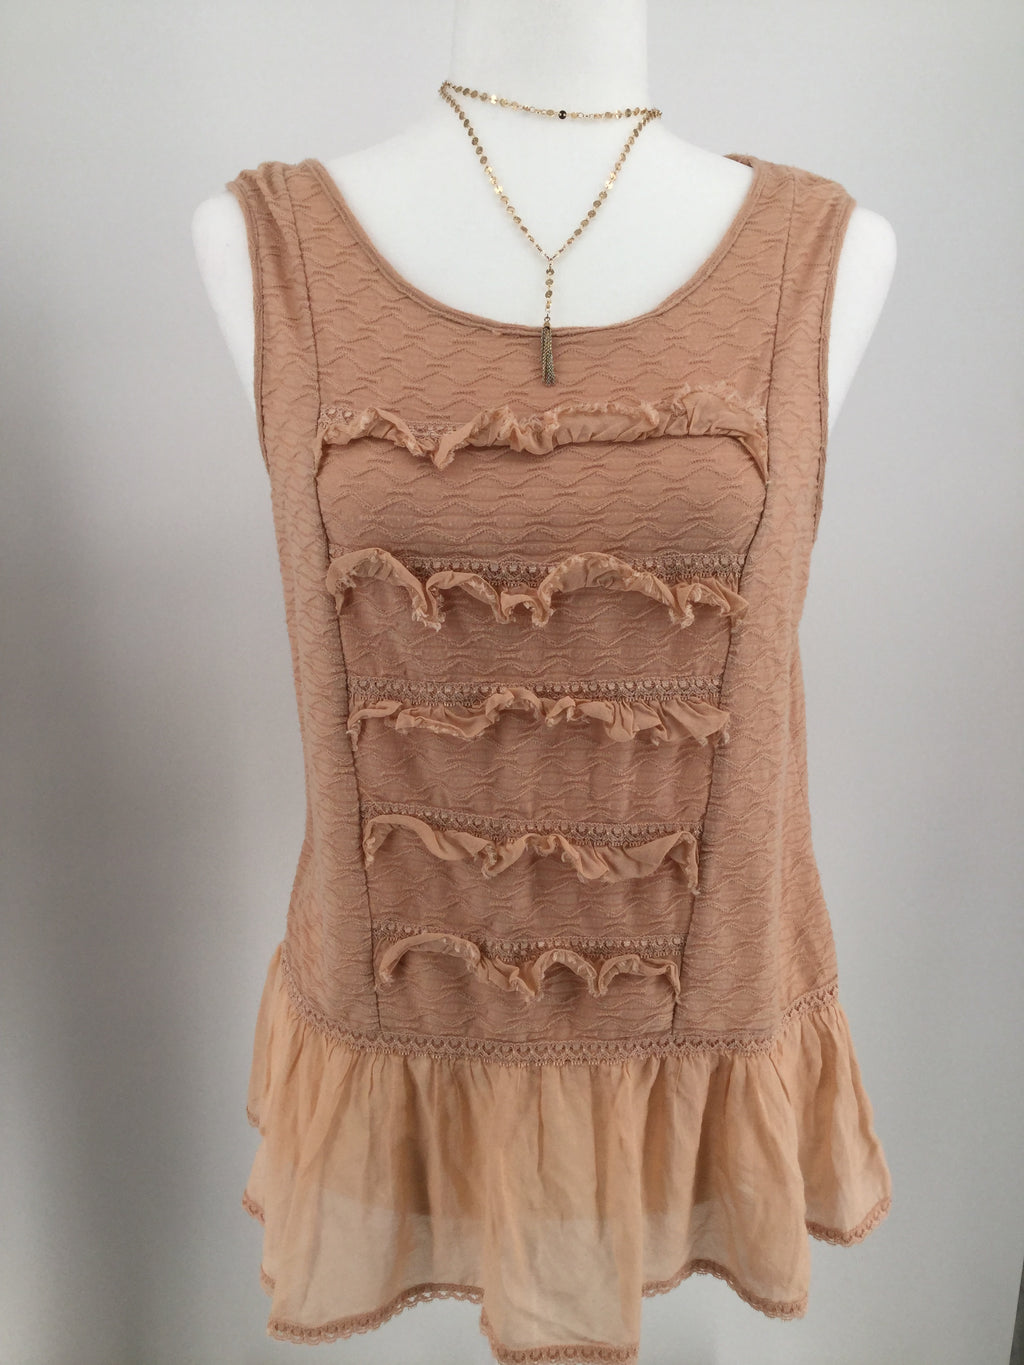 FREE PEOPLE TOP SLEEVELESS SIZE:M